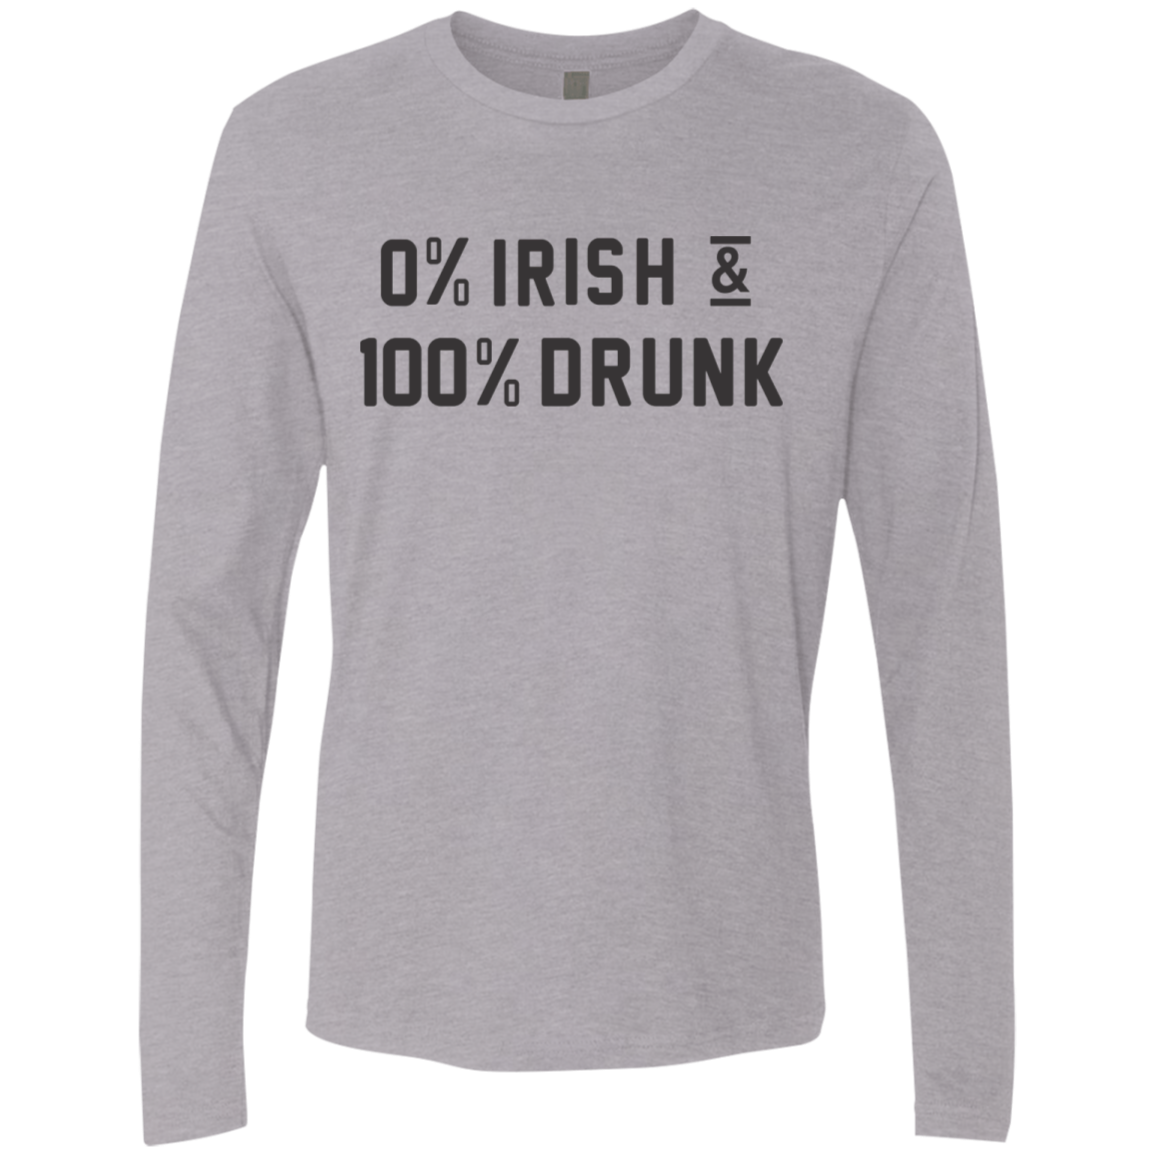 0'Irish 100'Drunk Men's Long Sleeve Tee